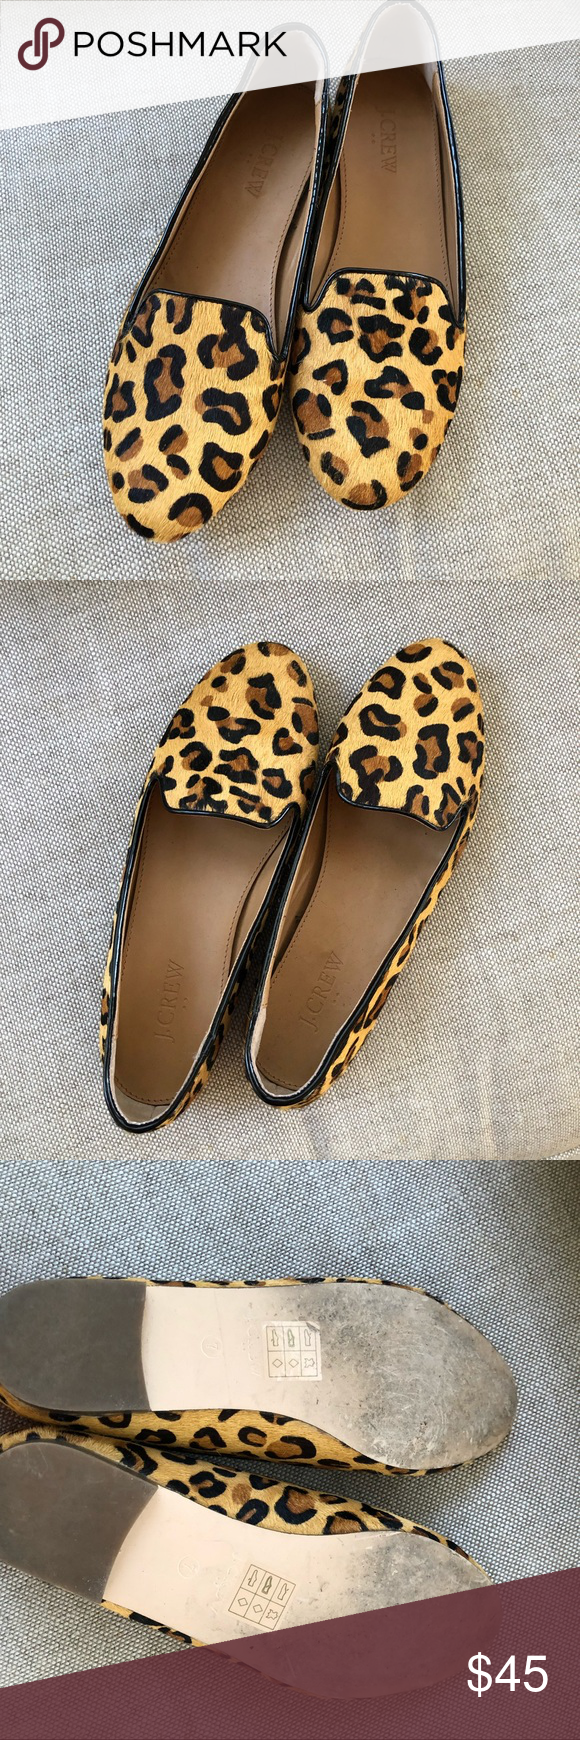 8755e3f4cbf Leopard loafer flats. Size 7. Excellent used condition. Like new! Perfect  for the season! J. Crew Factory Shoes Flats   Loafers